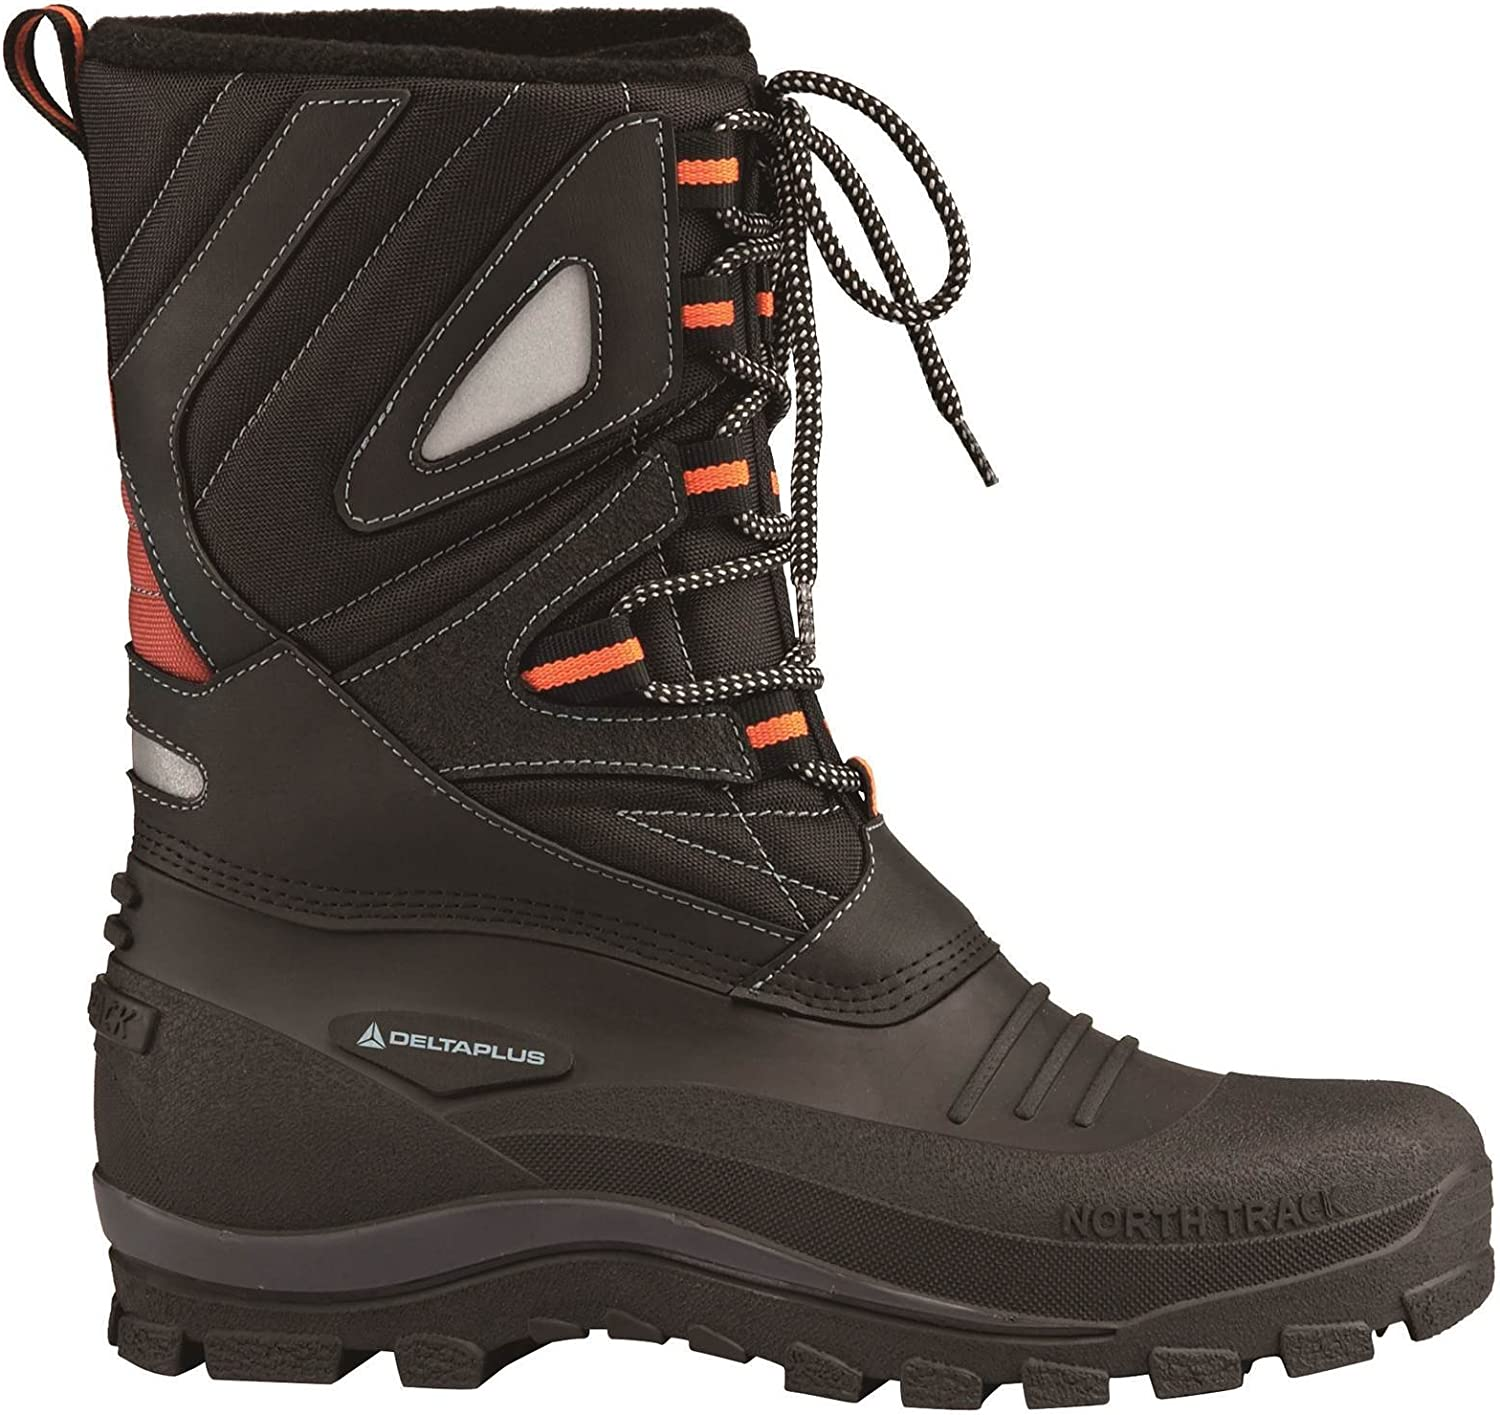 Delta Plus Lautaret Black Thermal Lined Winter Snow Boots